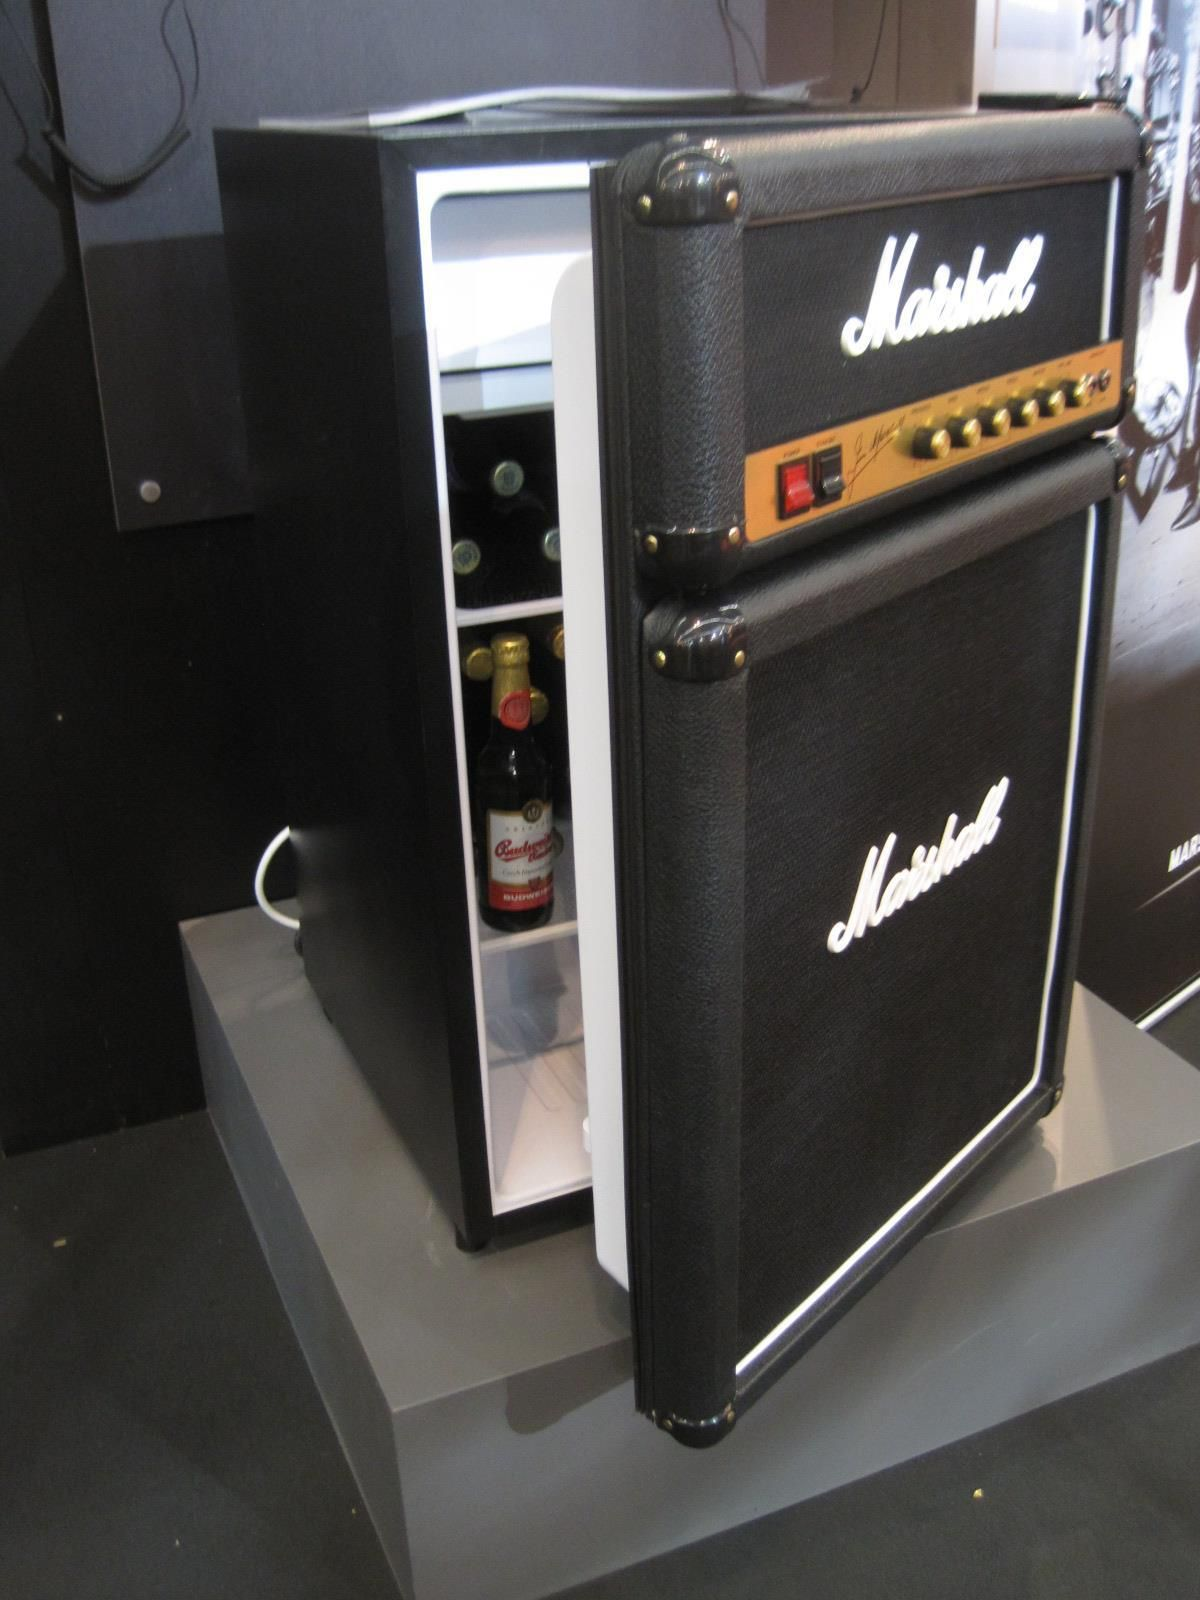 Home for the home marshall fridge - Marshall Stack Refrigerator For The Music Man Cave Room In The Home